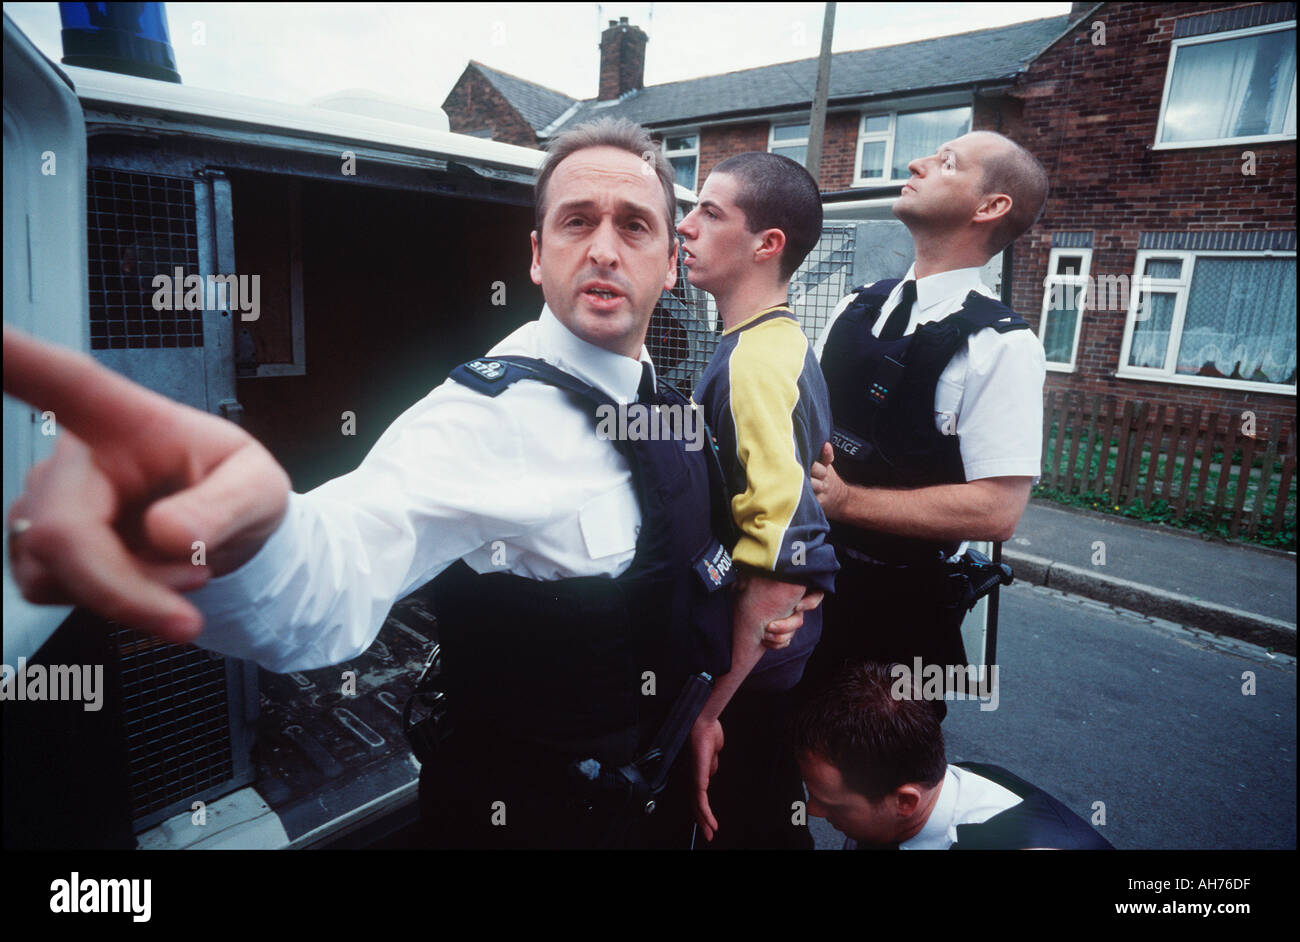 Police officers arrest youths during the riots in Oldham - Stock Image